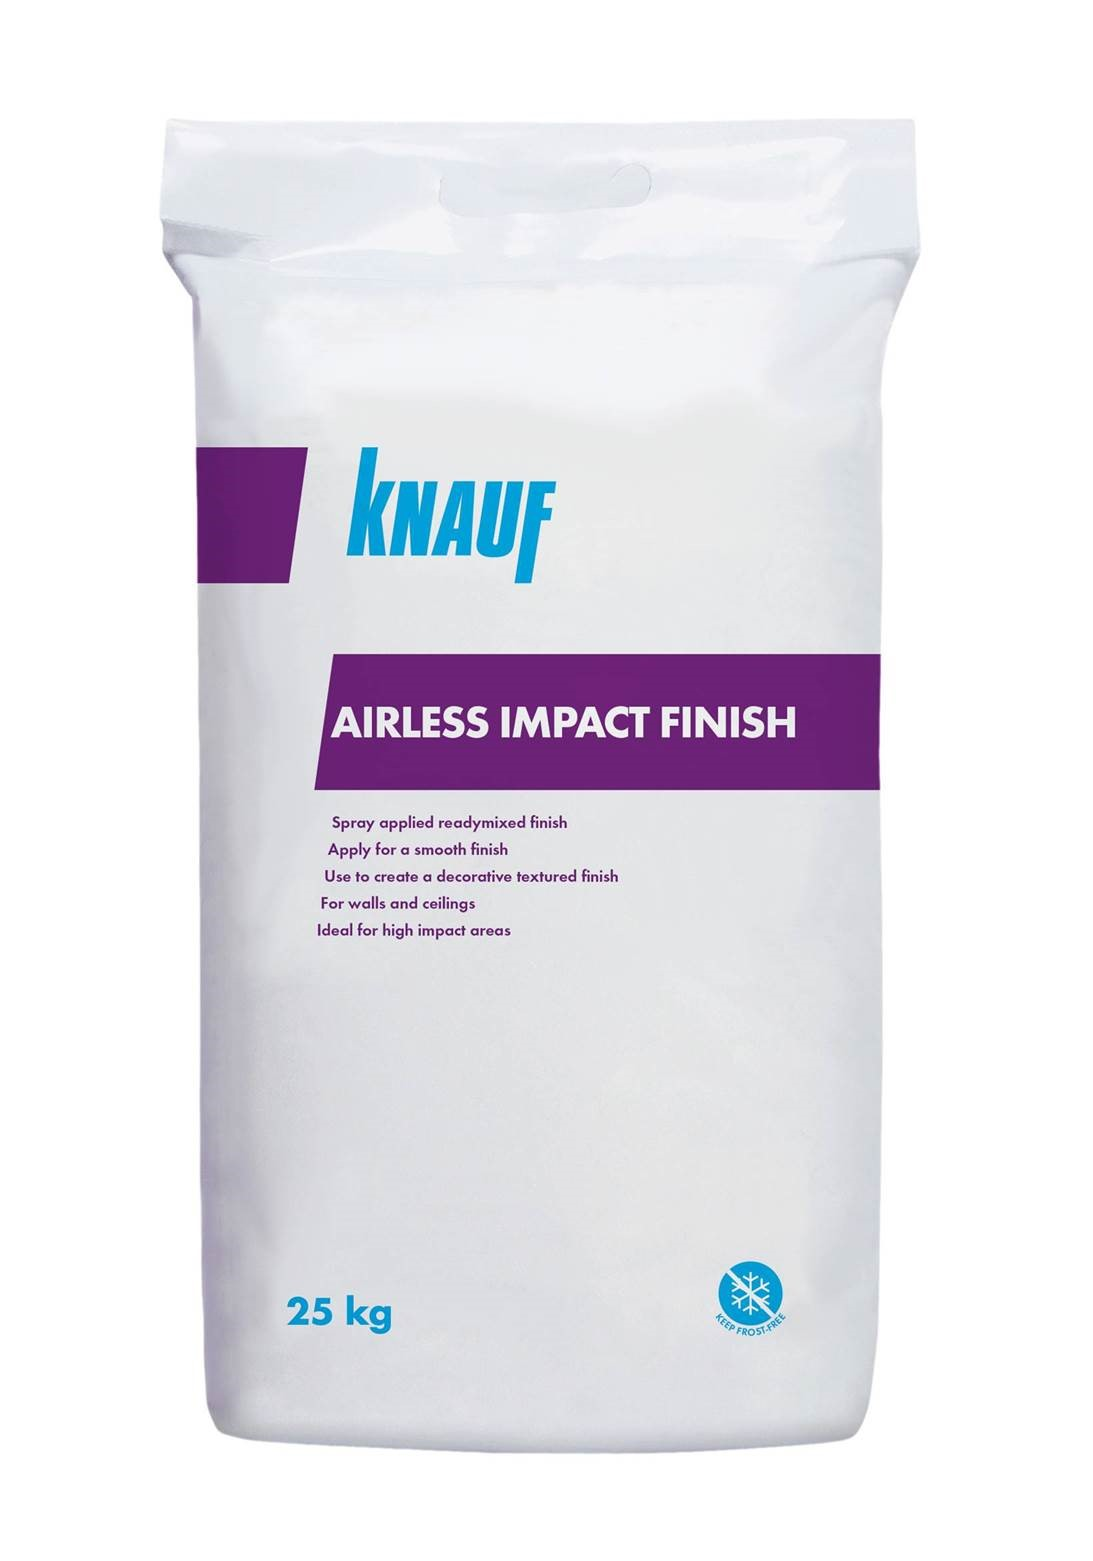 Airless Impact Finish